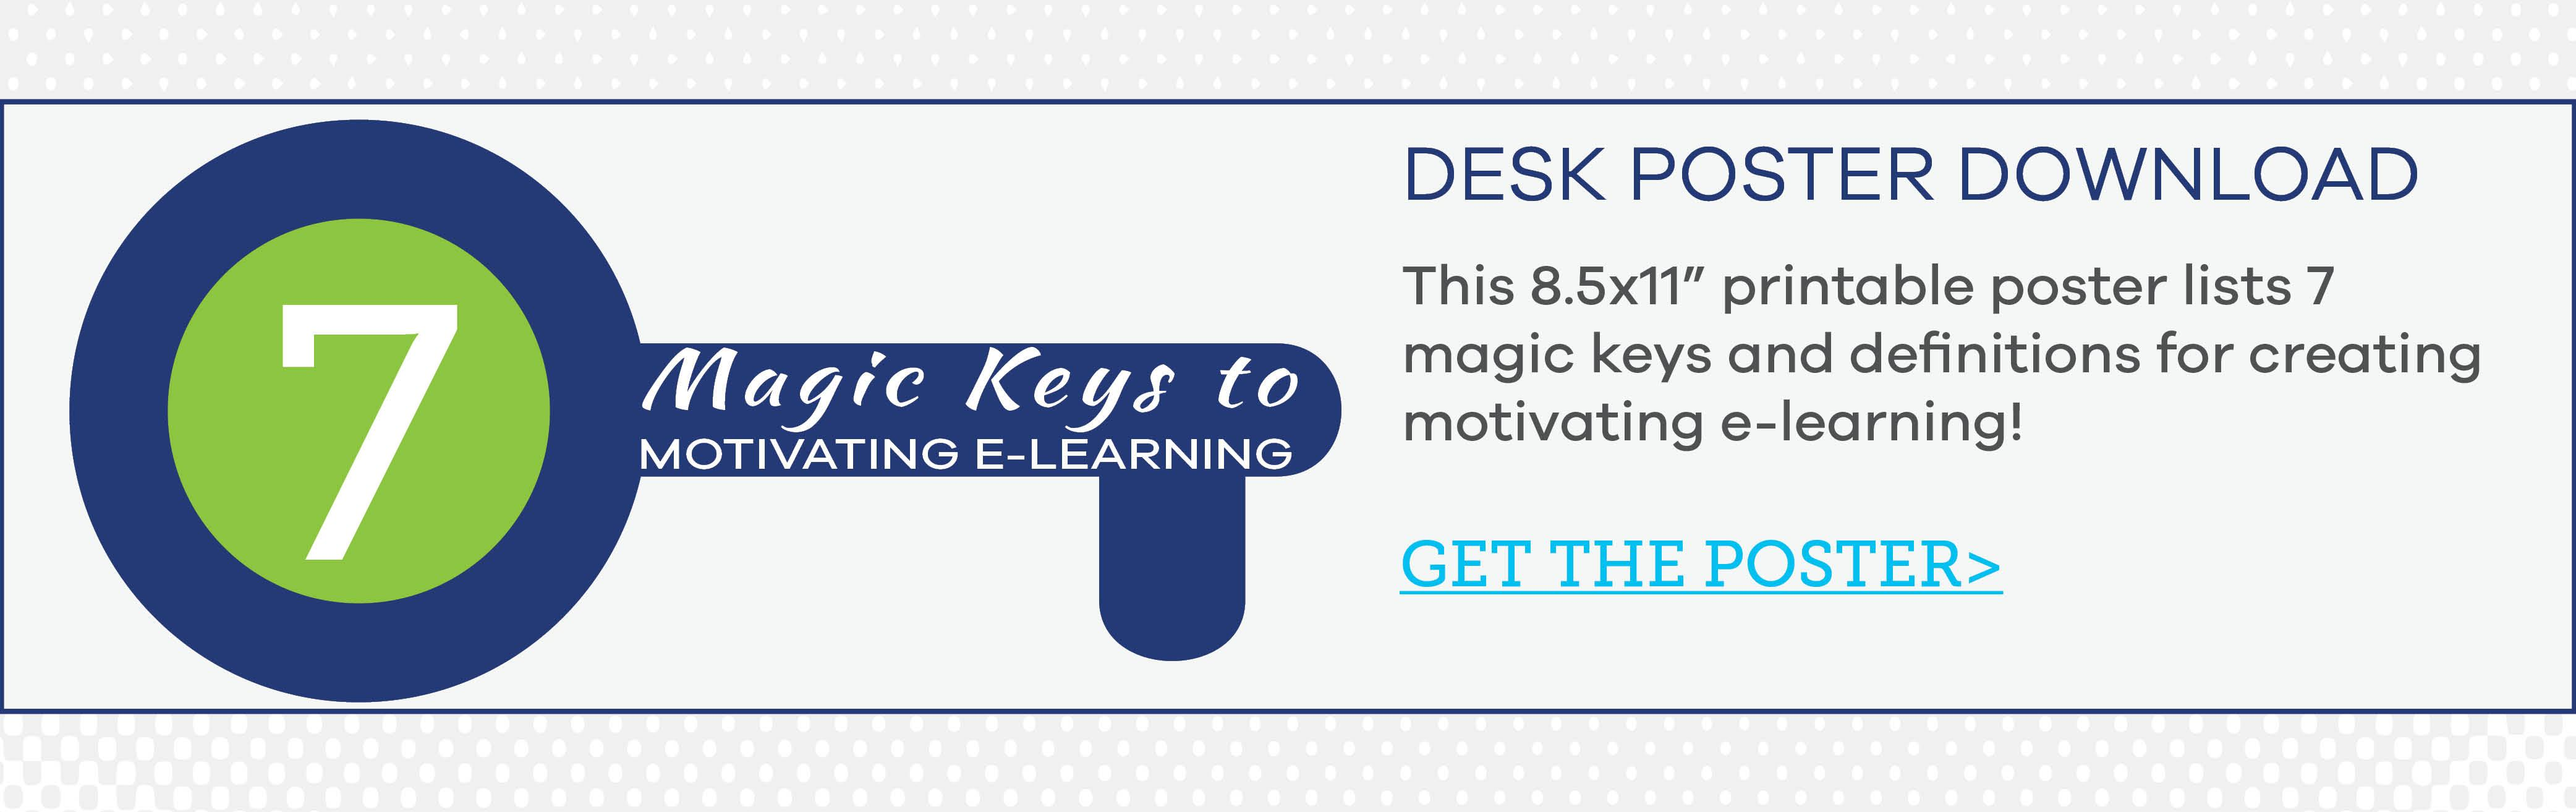 7 Magic Keys to Motivating e-Learning Poster